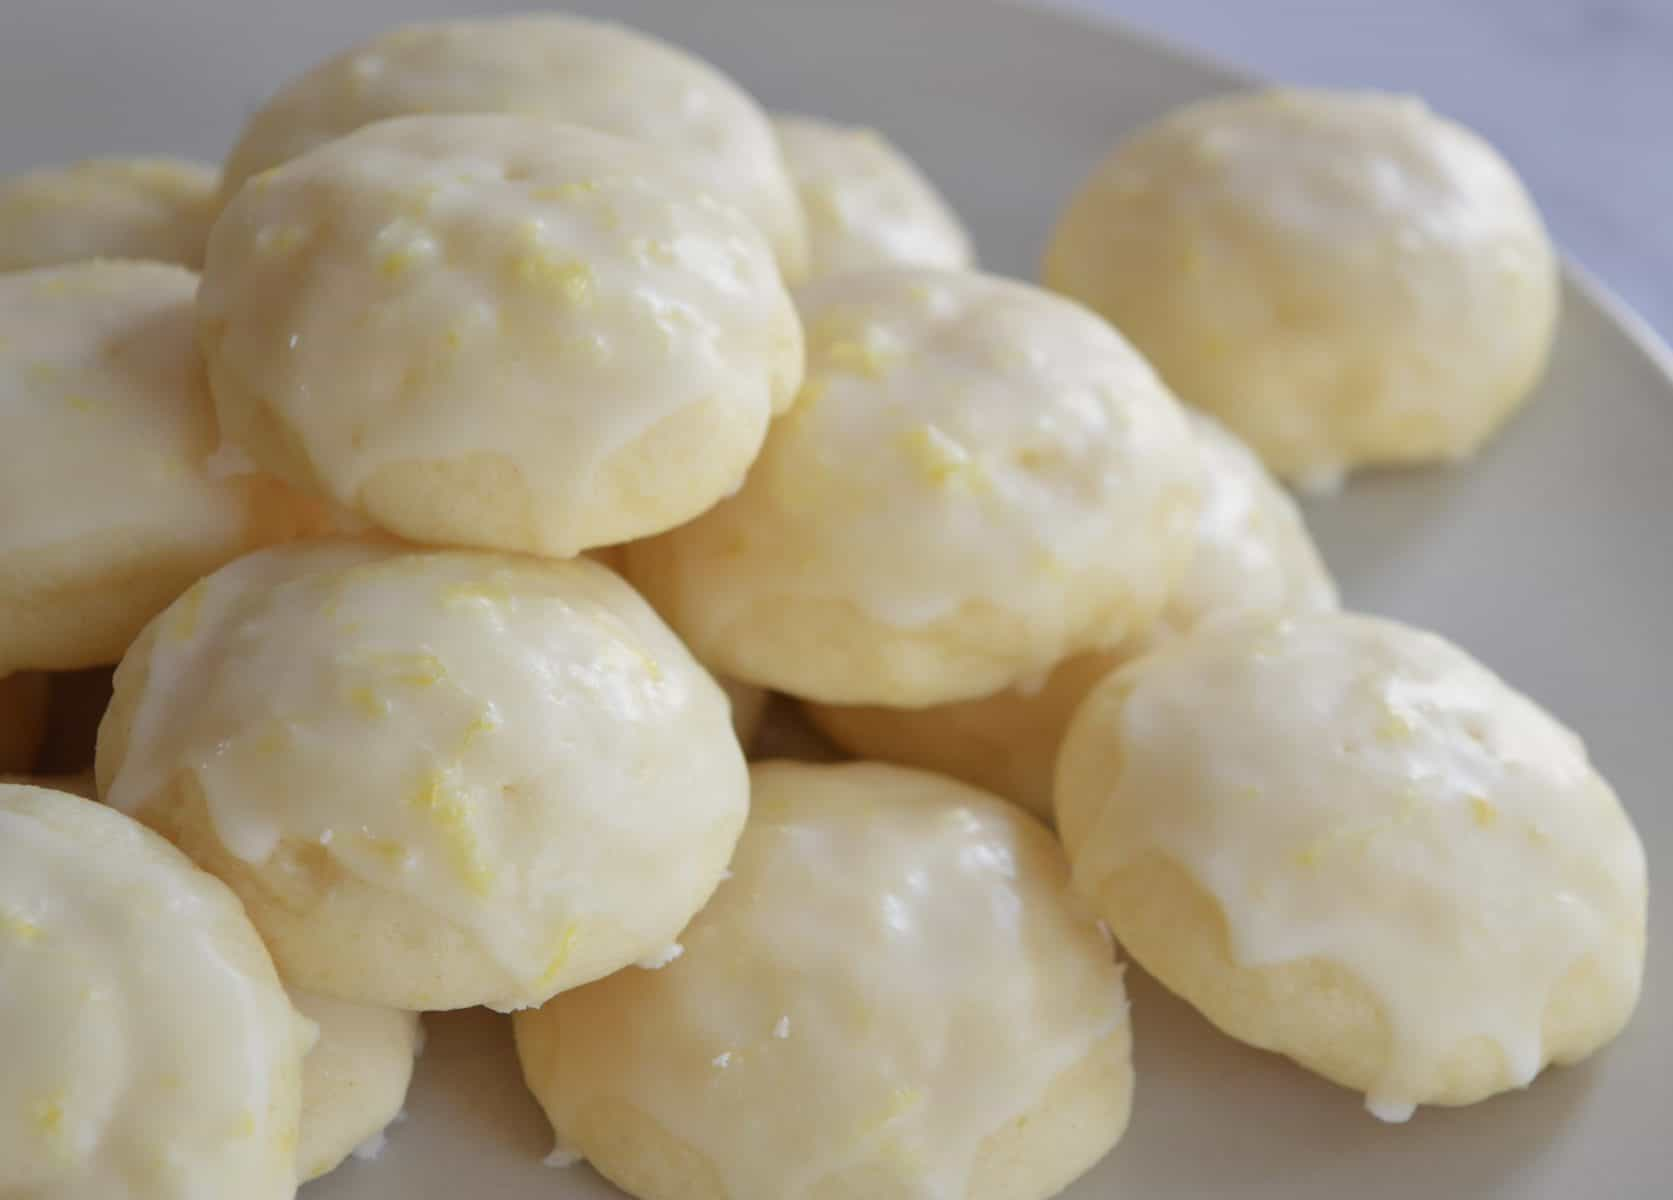 Limoncello Ricotta Cookies stacked on a white plate.